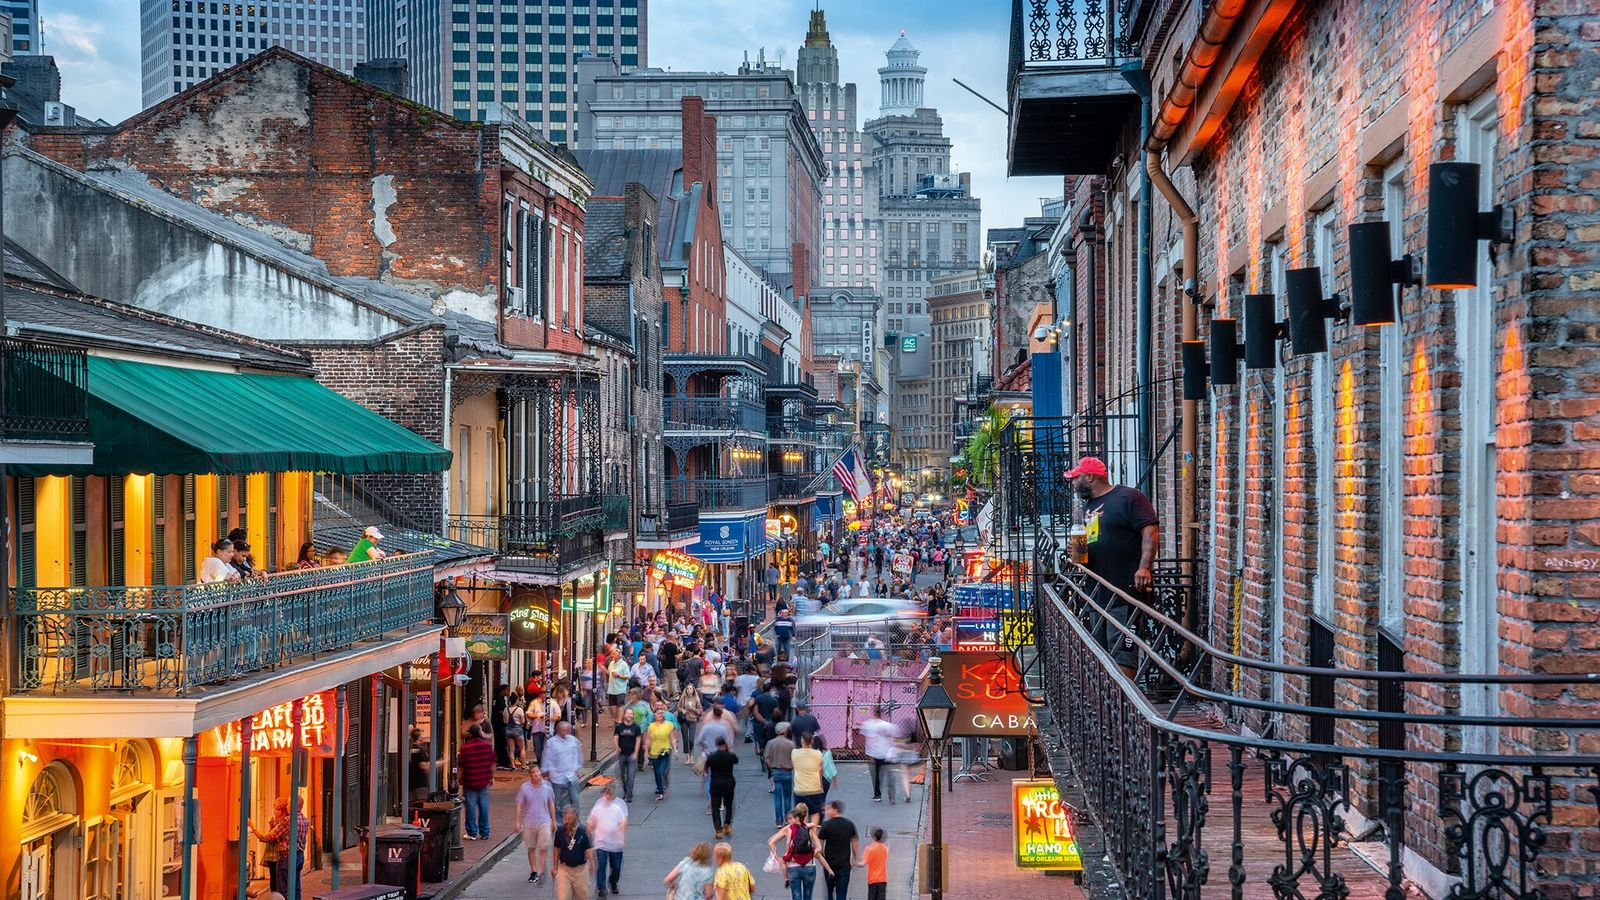 Early evening revelry on Bourbon Street, New Orleans.